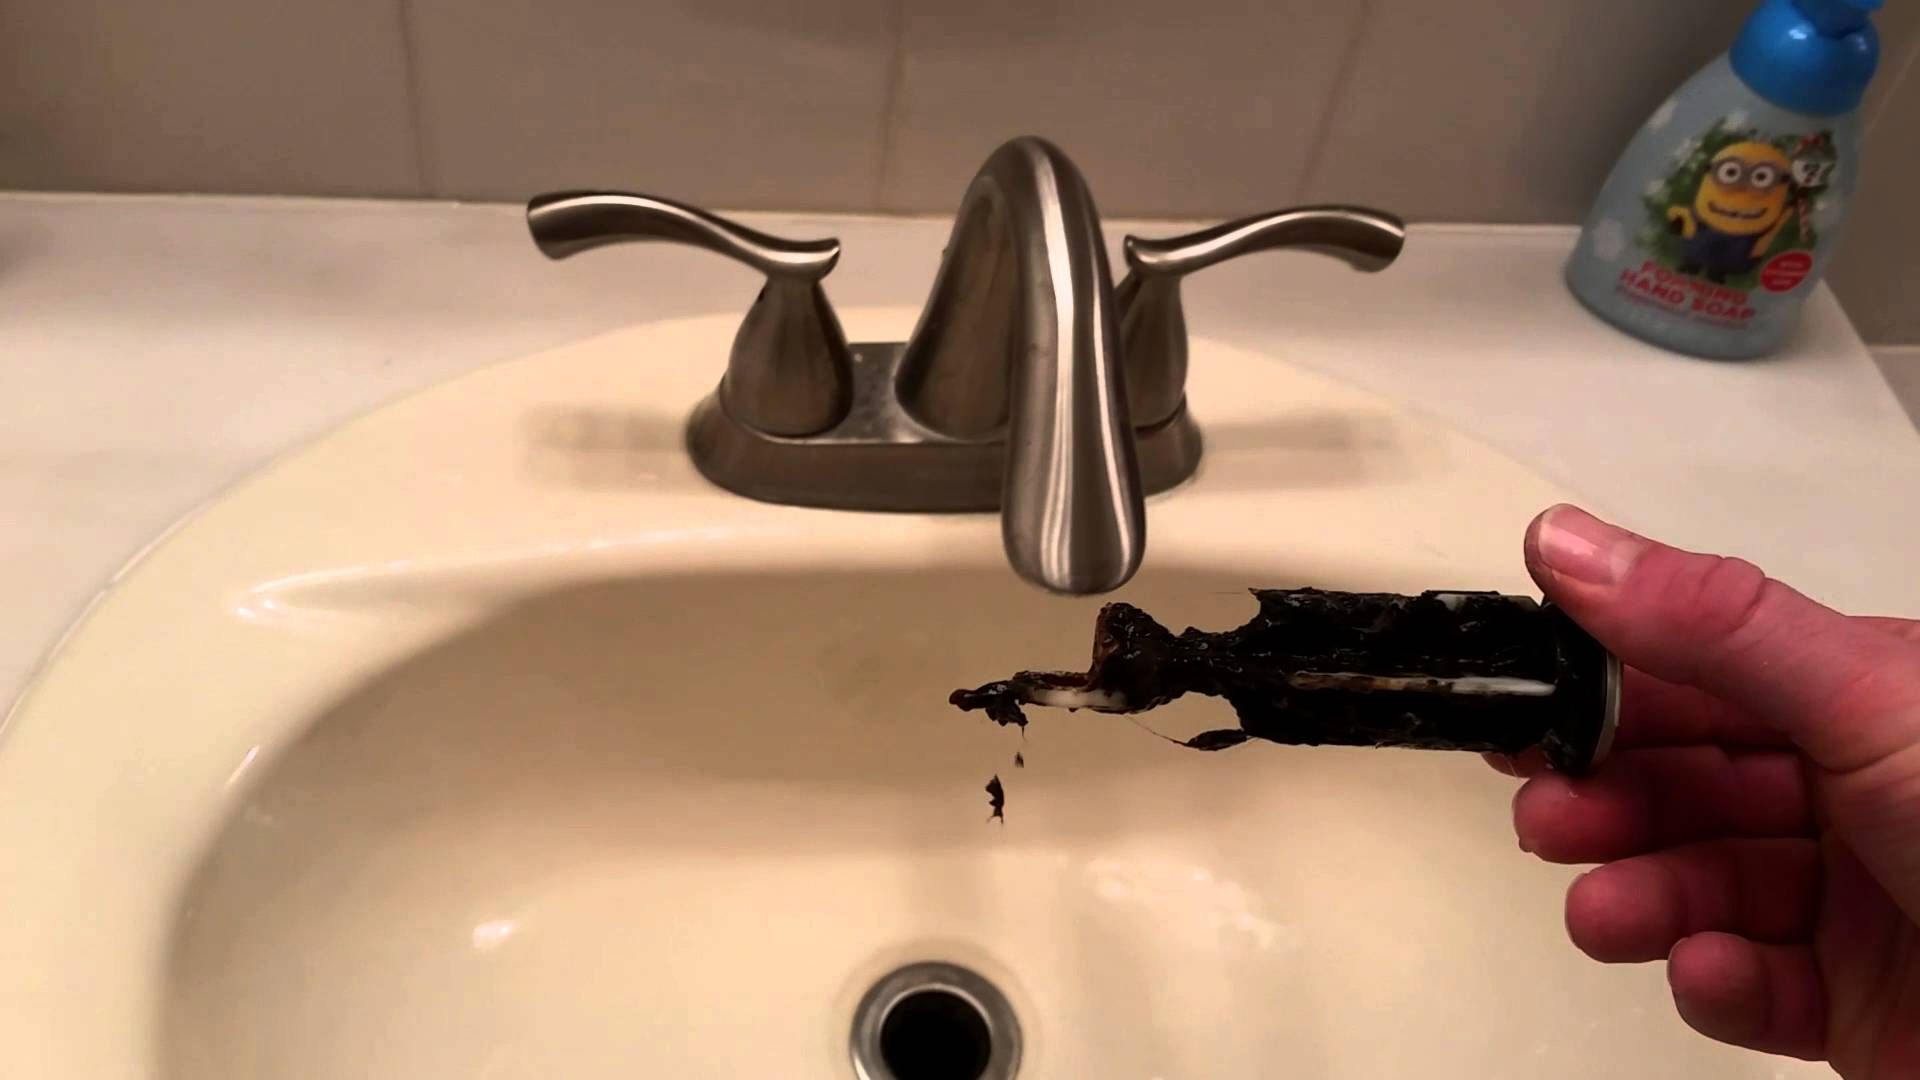 Bathroom Sink Quick Fix: How To Remove And Clean The Stopper   Unclog Si.